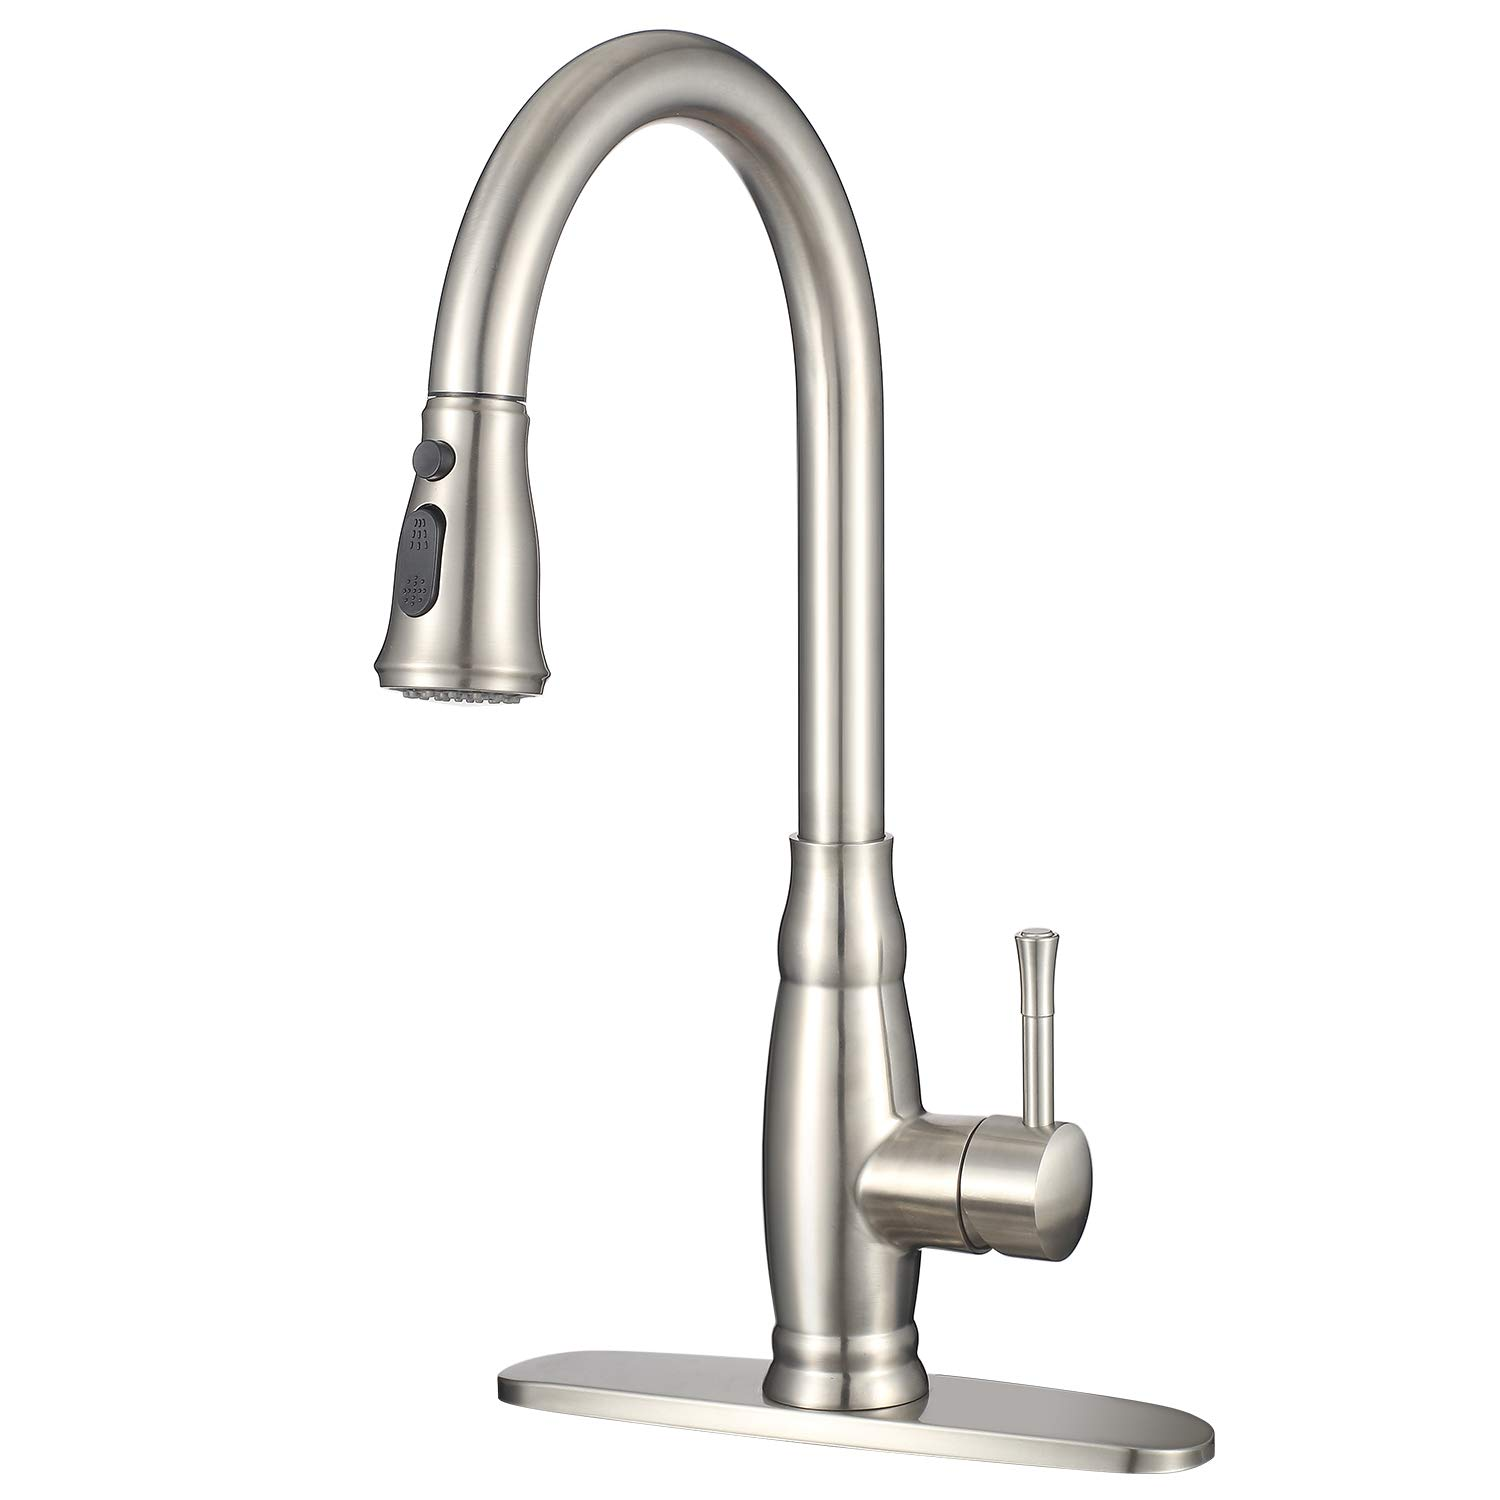 Stainless Steel Kitchen Faucet with Pull Down Sprayer ...